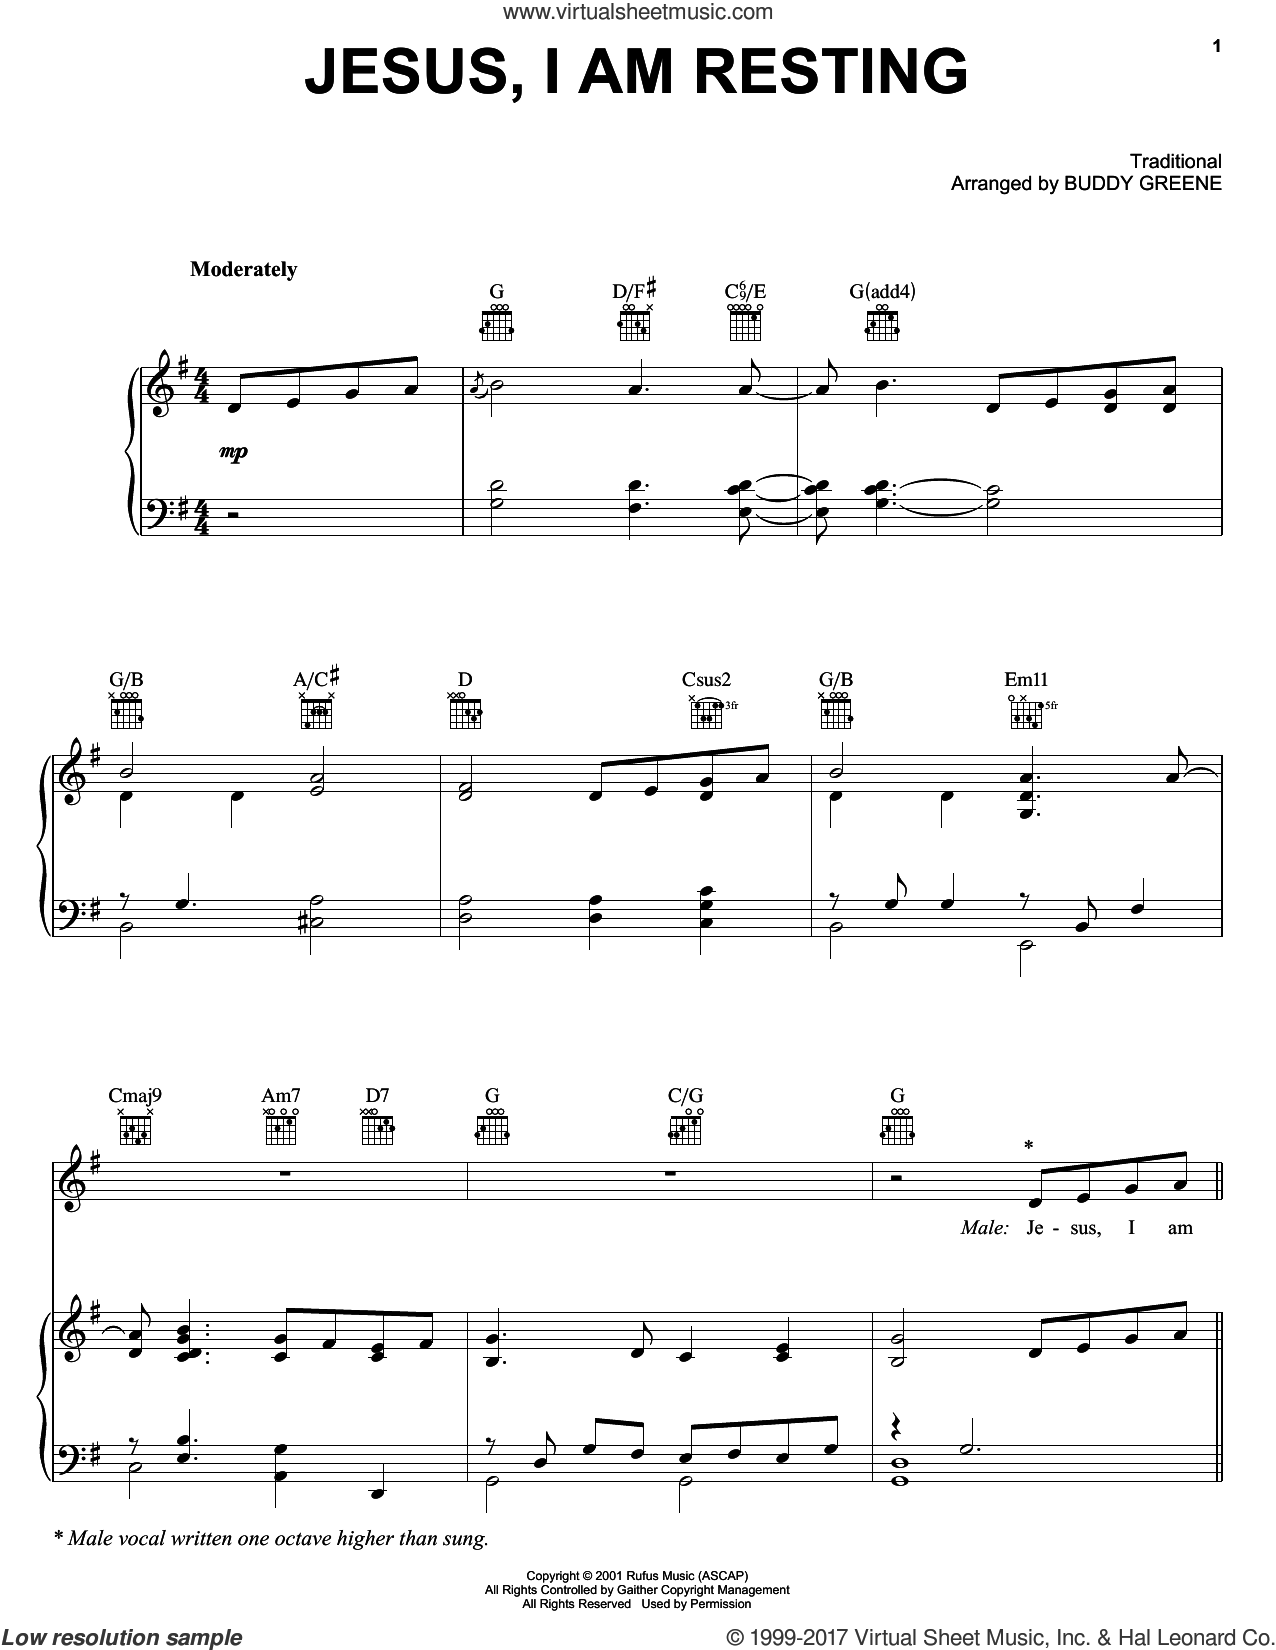 Jesus, I Am Resting sheet music for voice, piano or guitar by The Martins and Buddy Greene, intermediate skill level